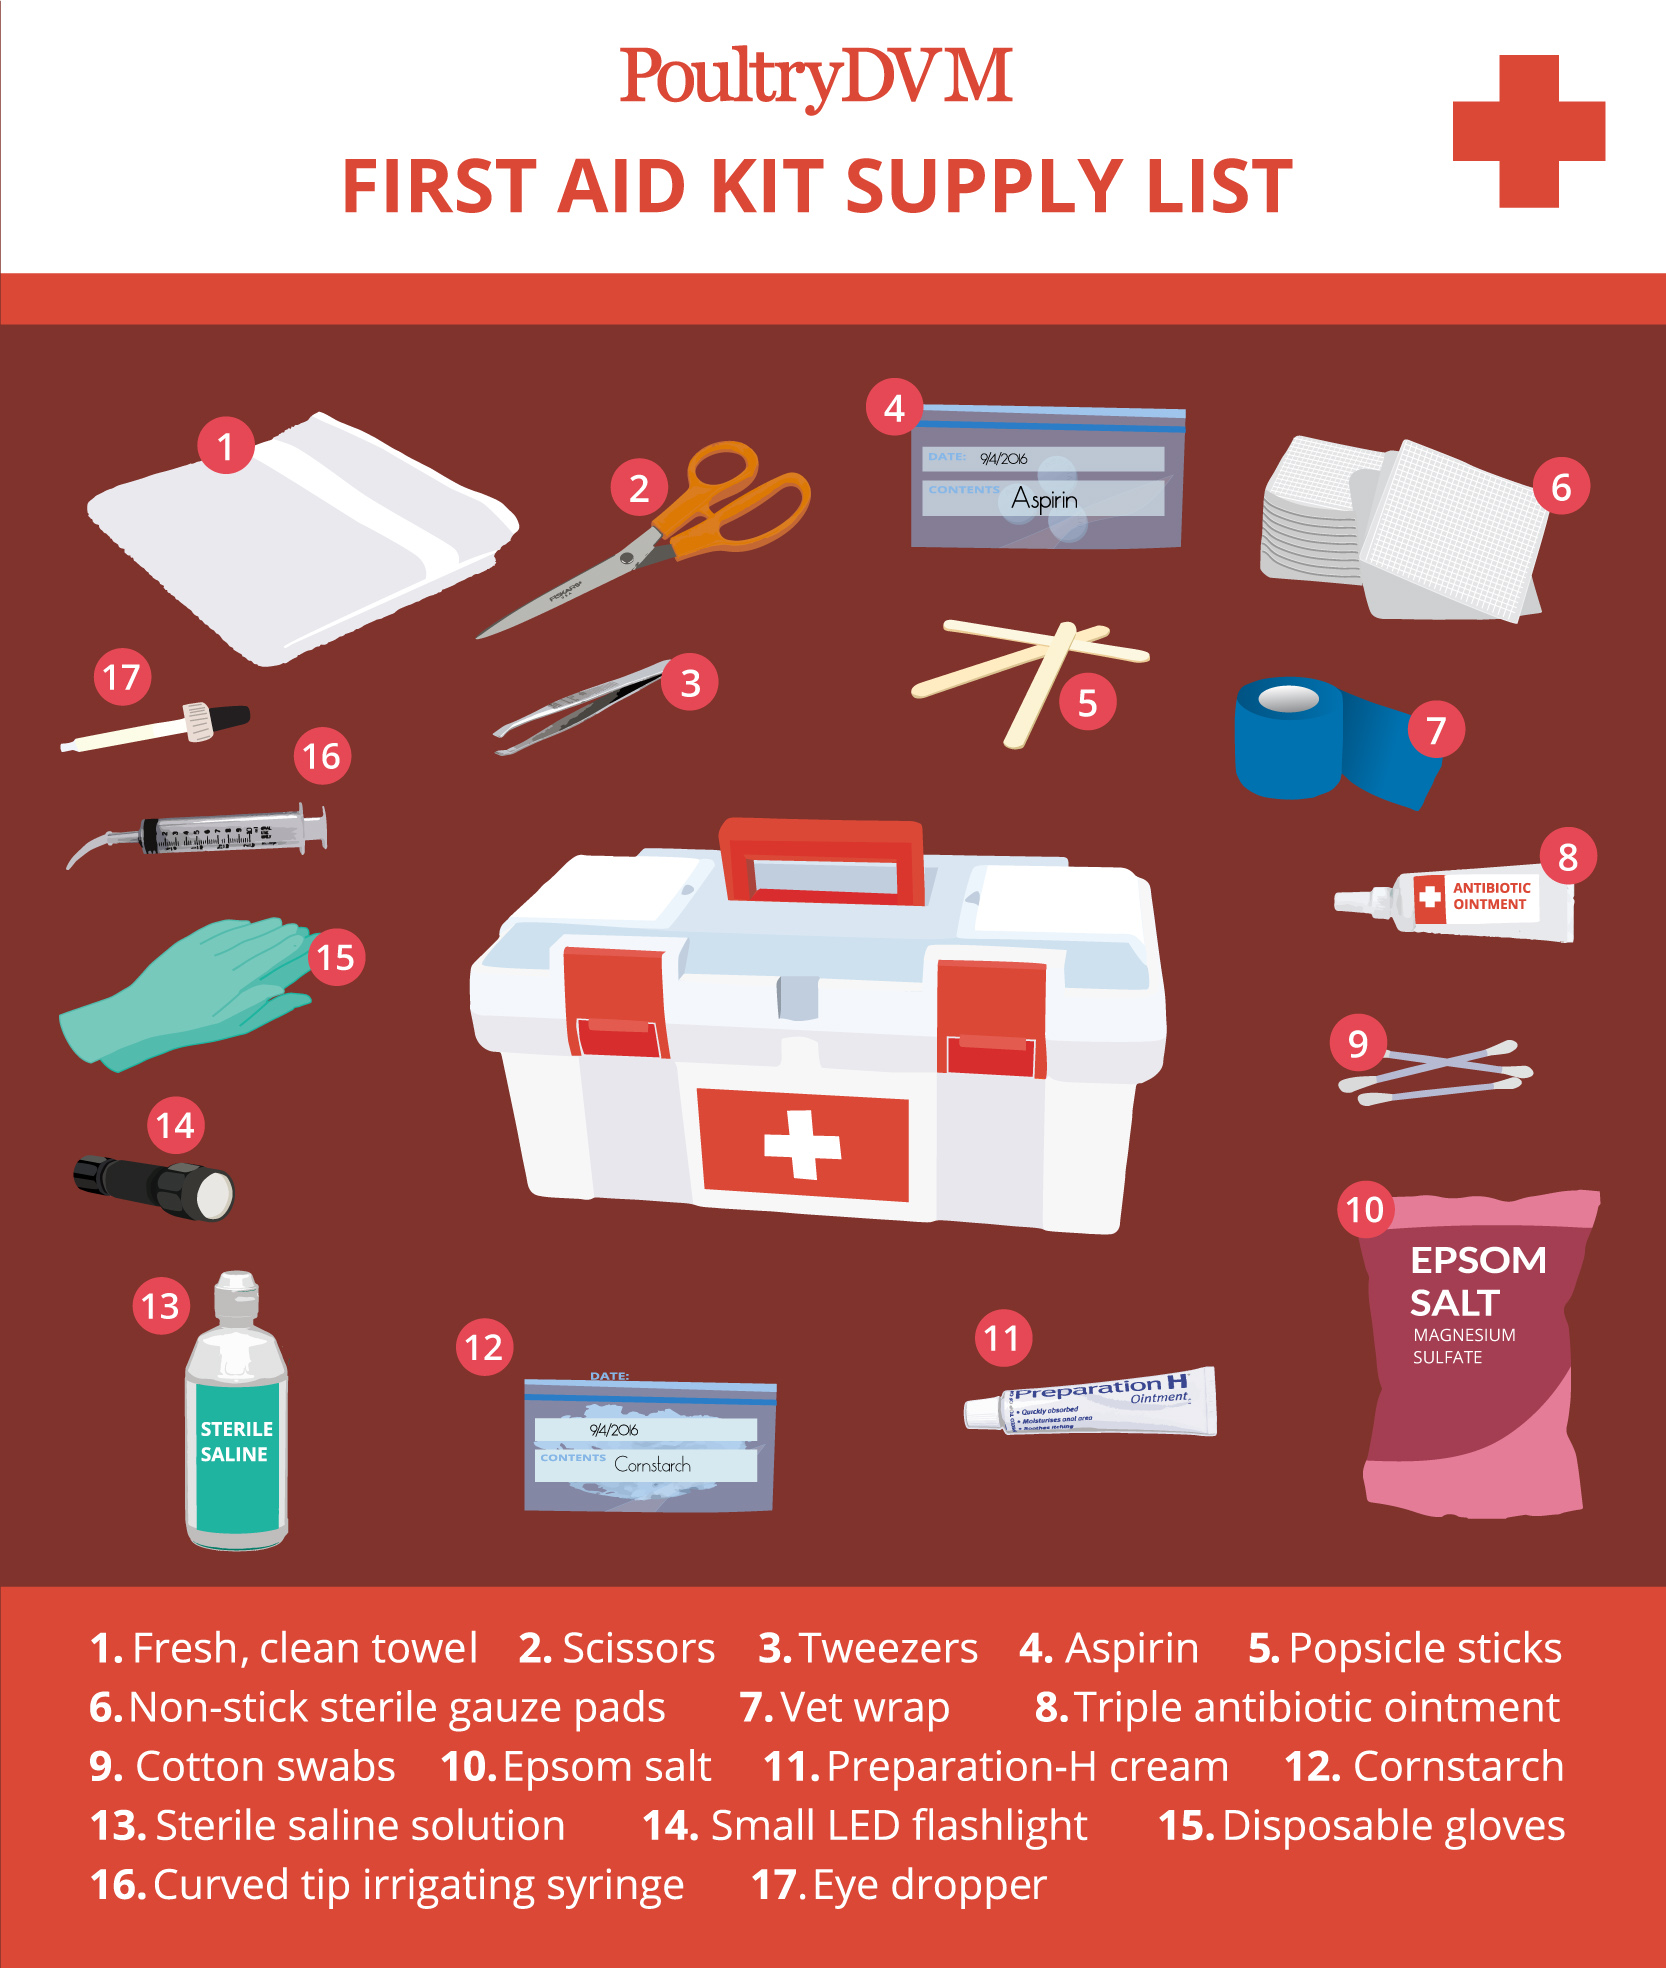 PoultryDVM - Chicken Keeping First Aid Supply List